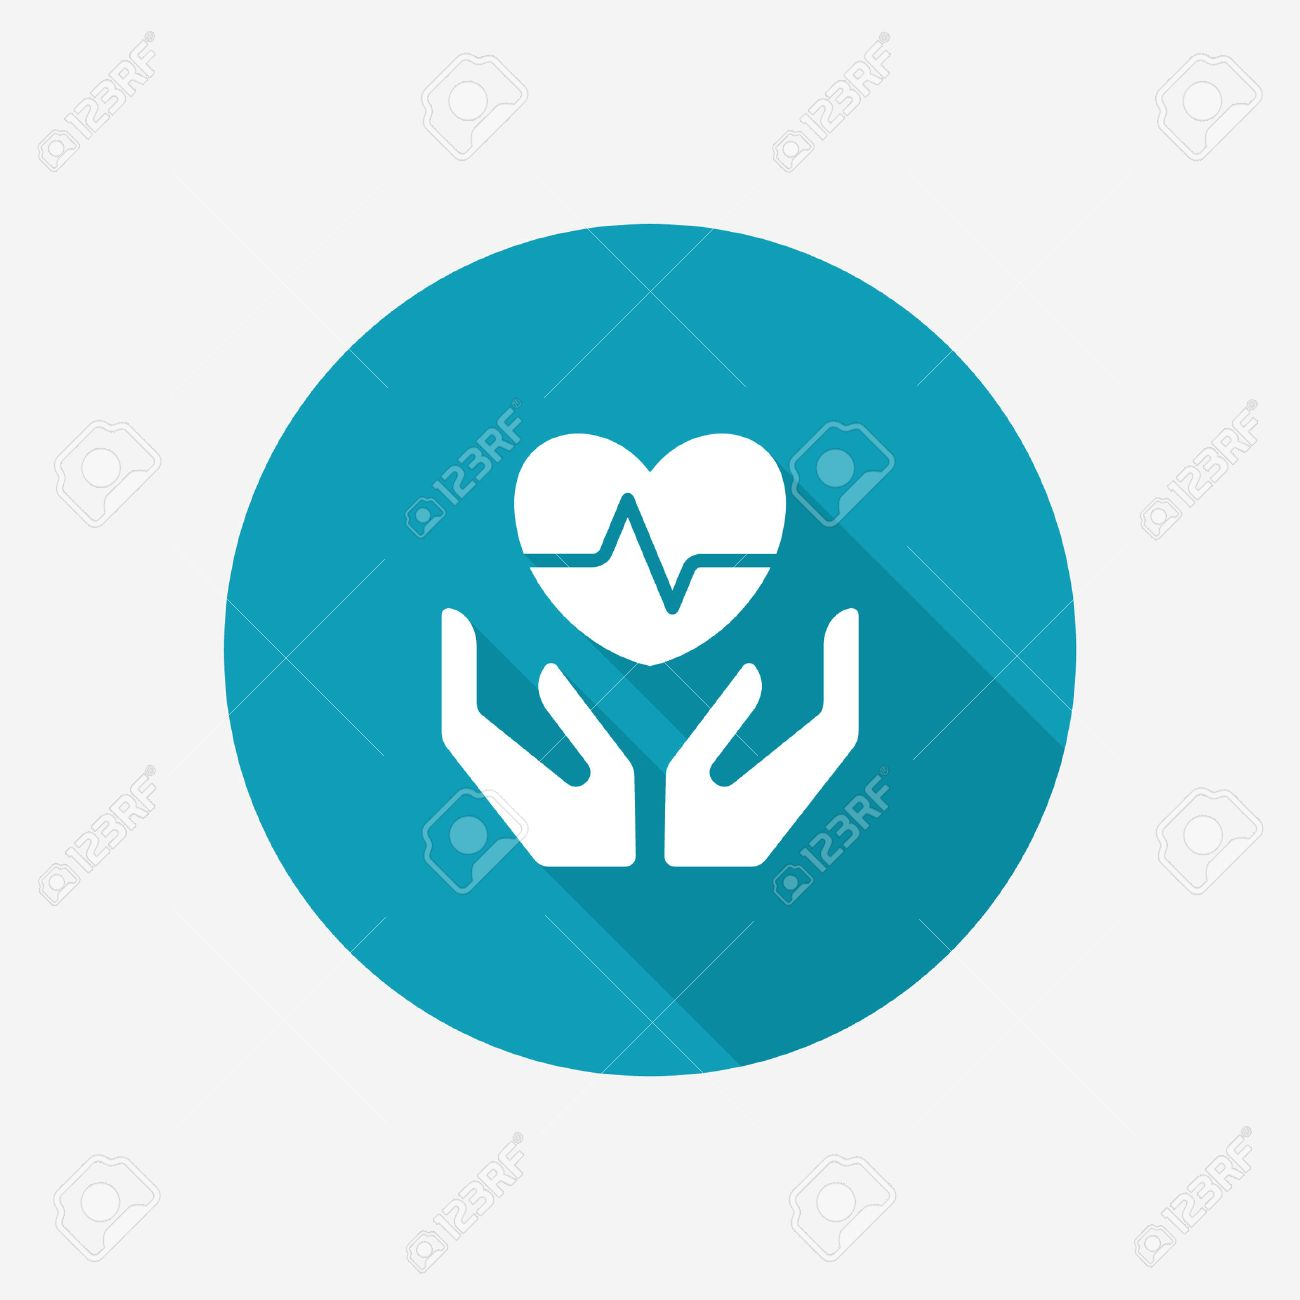 Life and health insurance icon - 52358869